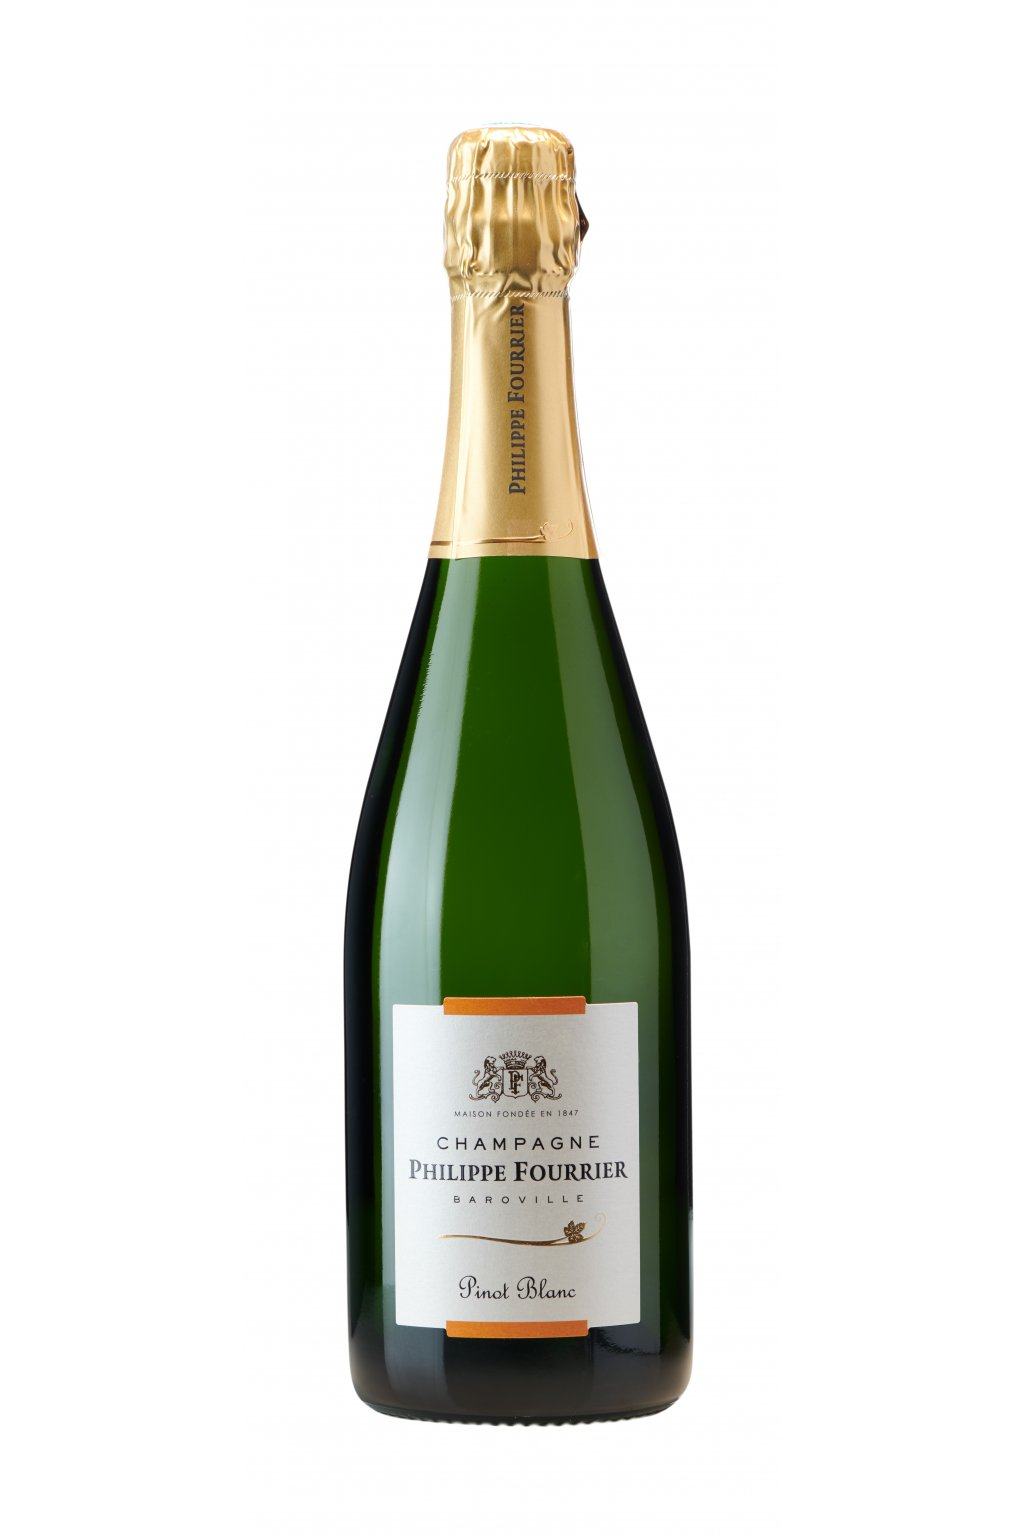 Pinot Blanc Champagne Ph Fourrier